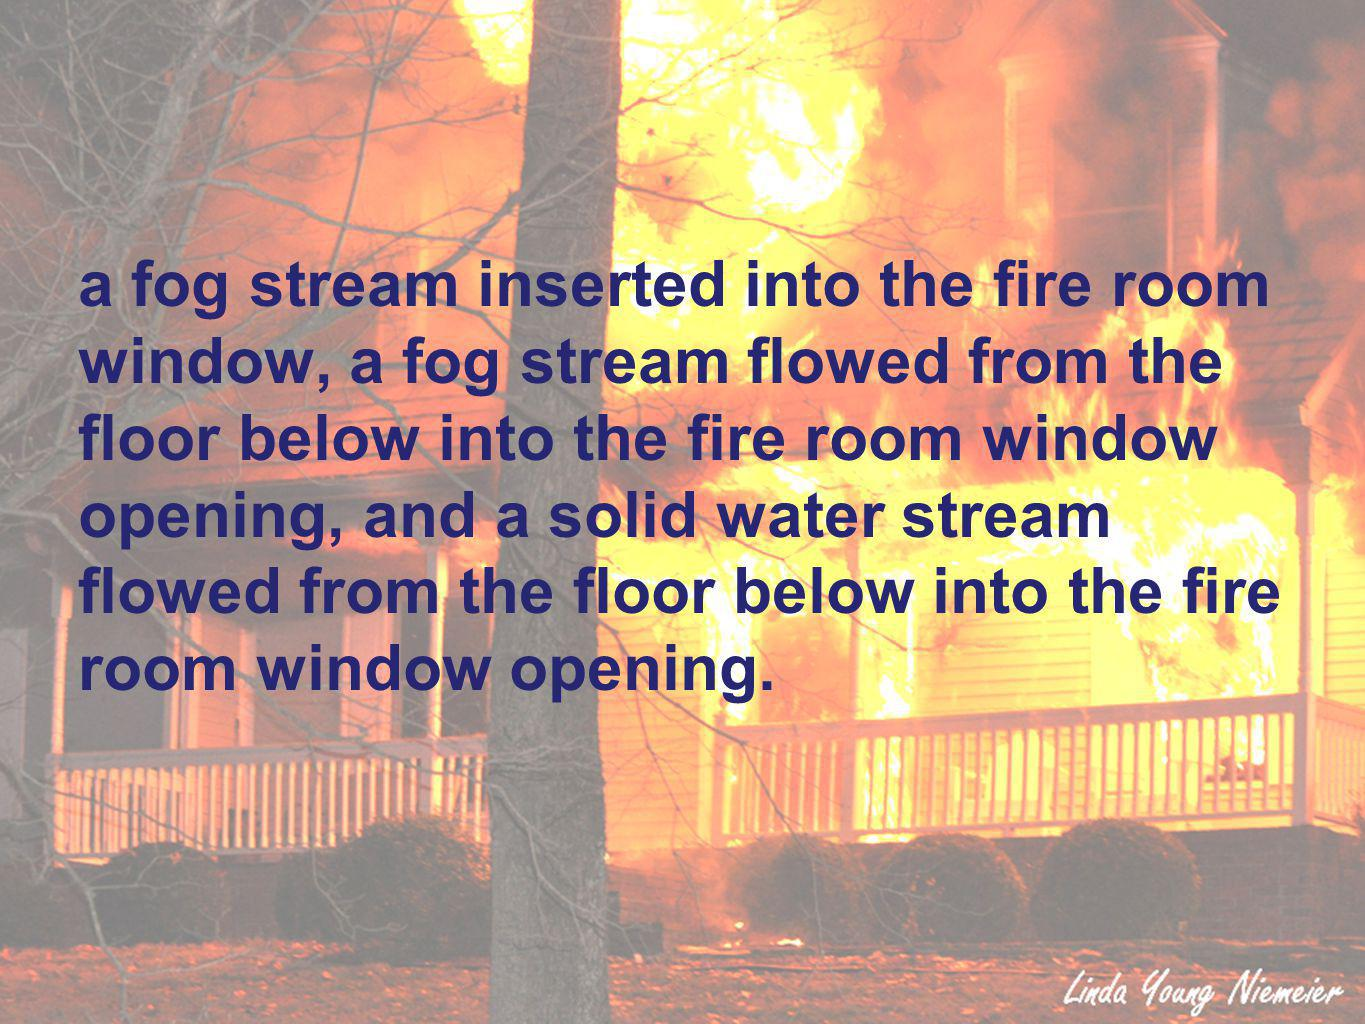 a fog stream inserted into the fire room window, a fog stream flowed from the floor below into the fire room window opening, and a solid water stream flowed from the floor below into the fire room window opening.